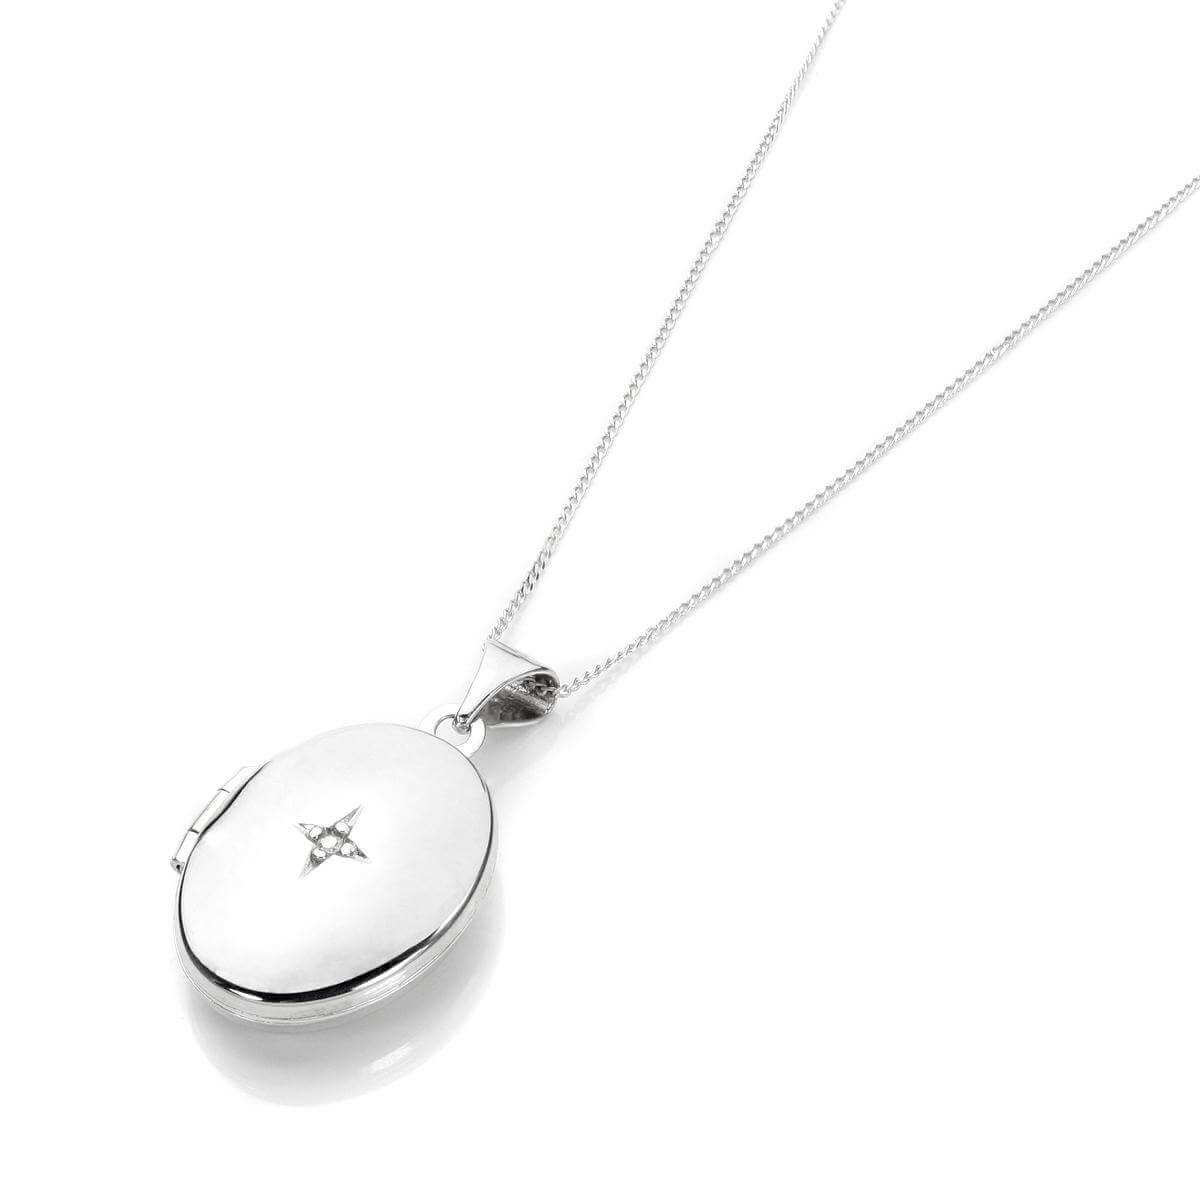 White Gold Oval Locket with Diamond